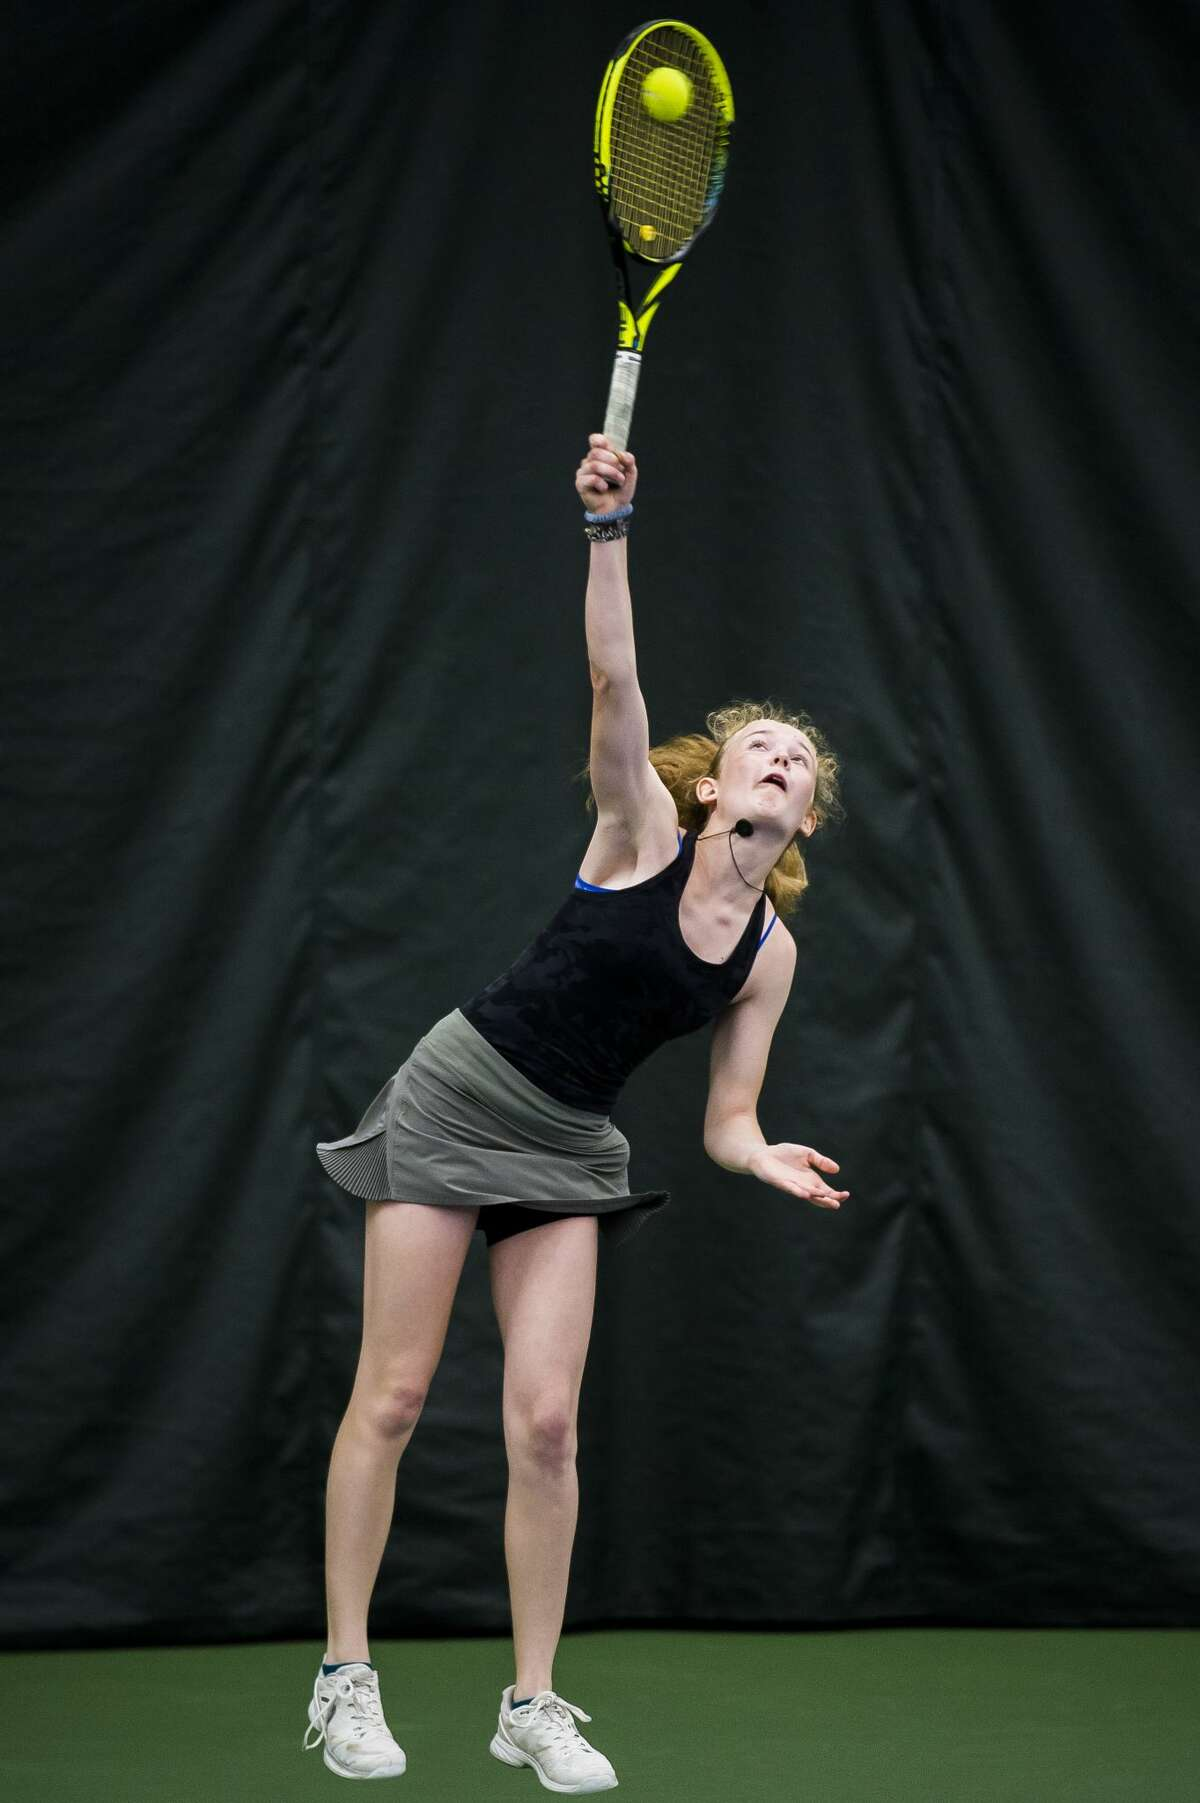 Dow's Laura Leiti serves the ball during a #3 singles match in the Division 1 state tennis tournament on Friday, May 31, 2019 at the Greater Midland Tennis Center. (Katy Kildee/kkildee@mdn.net)